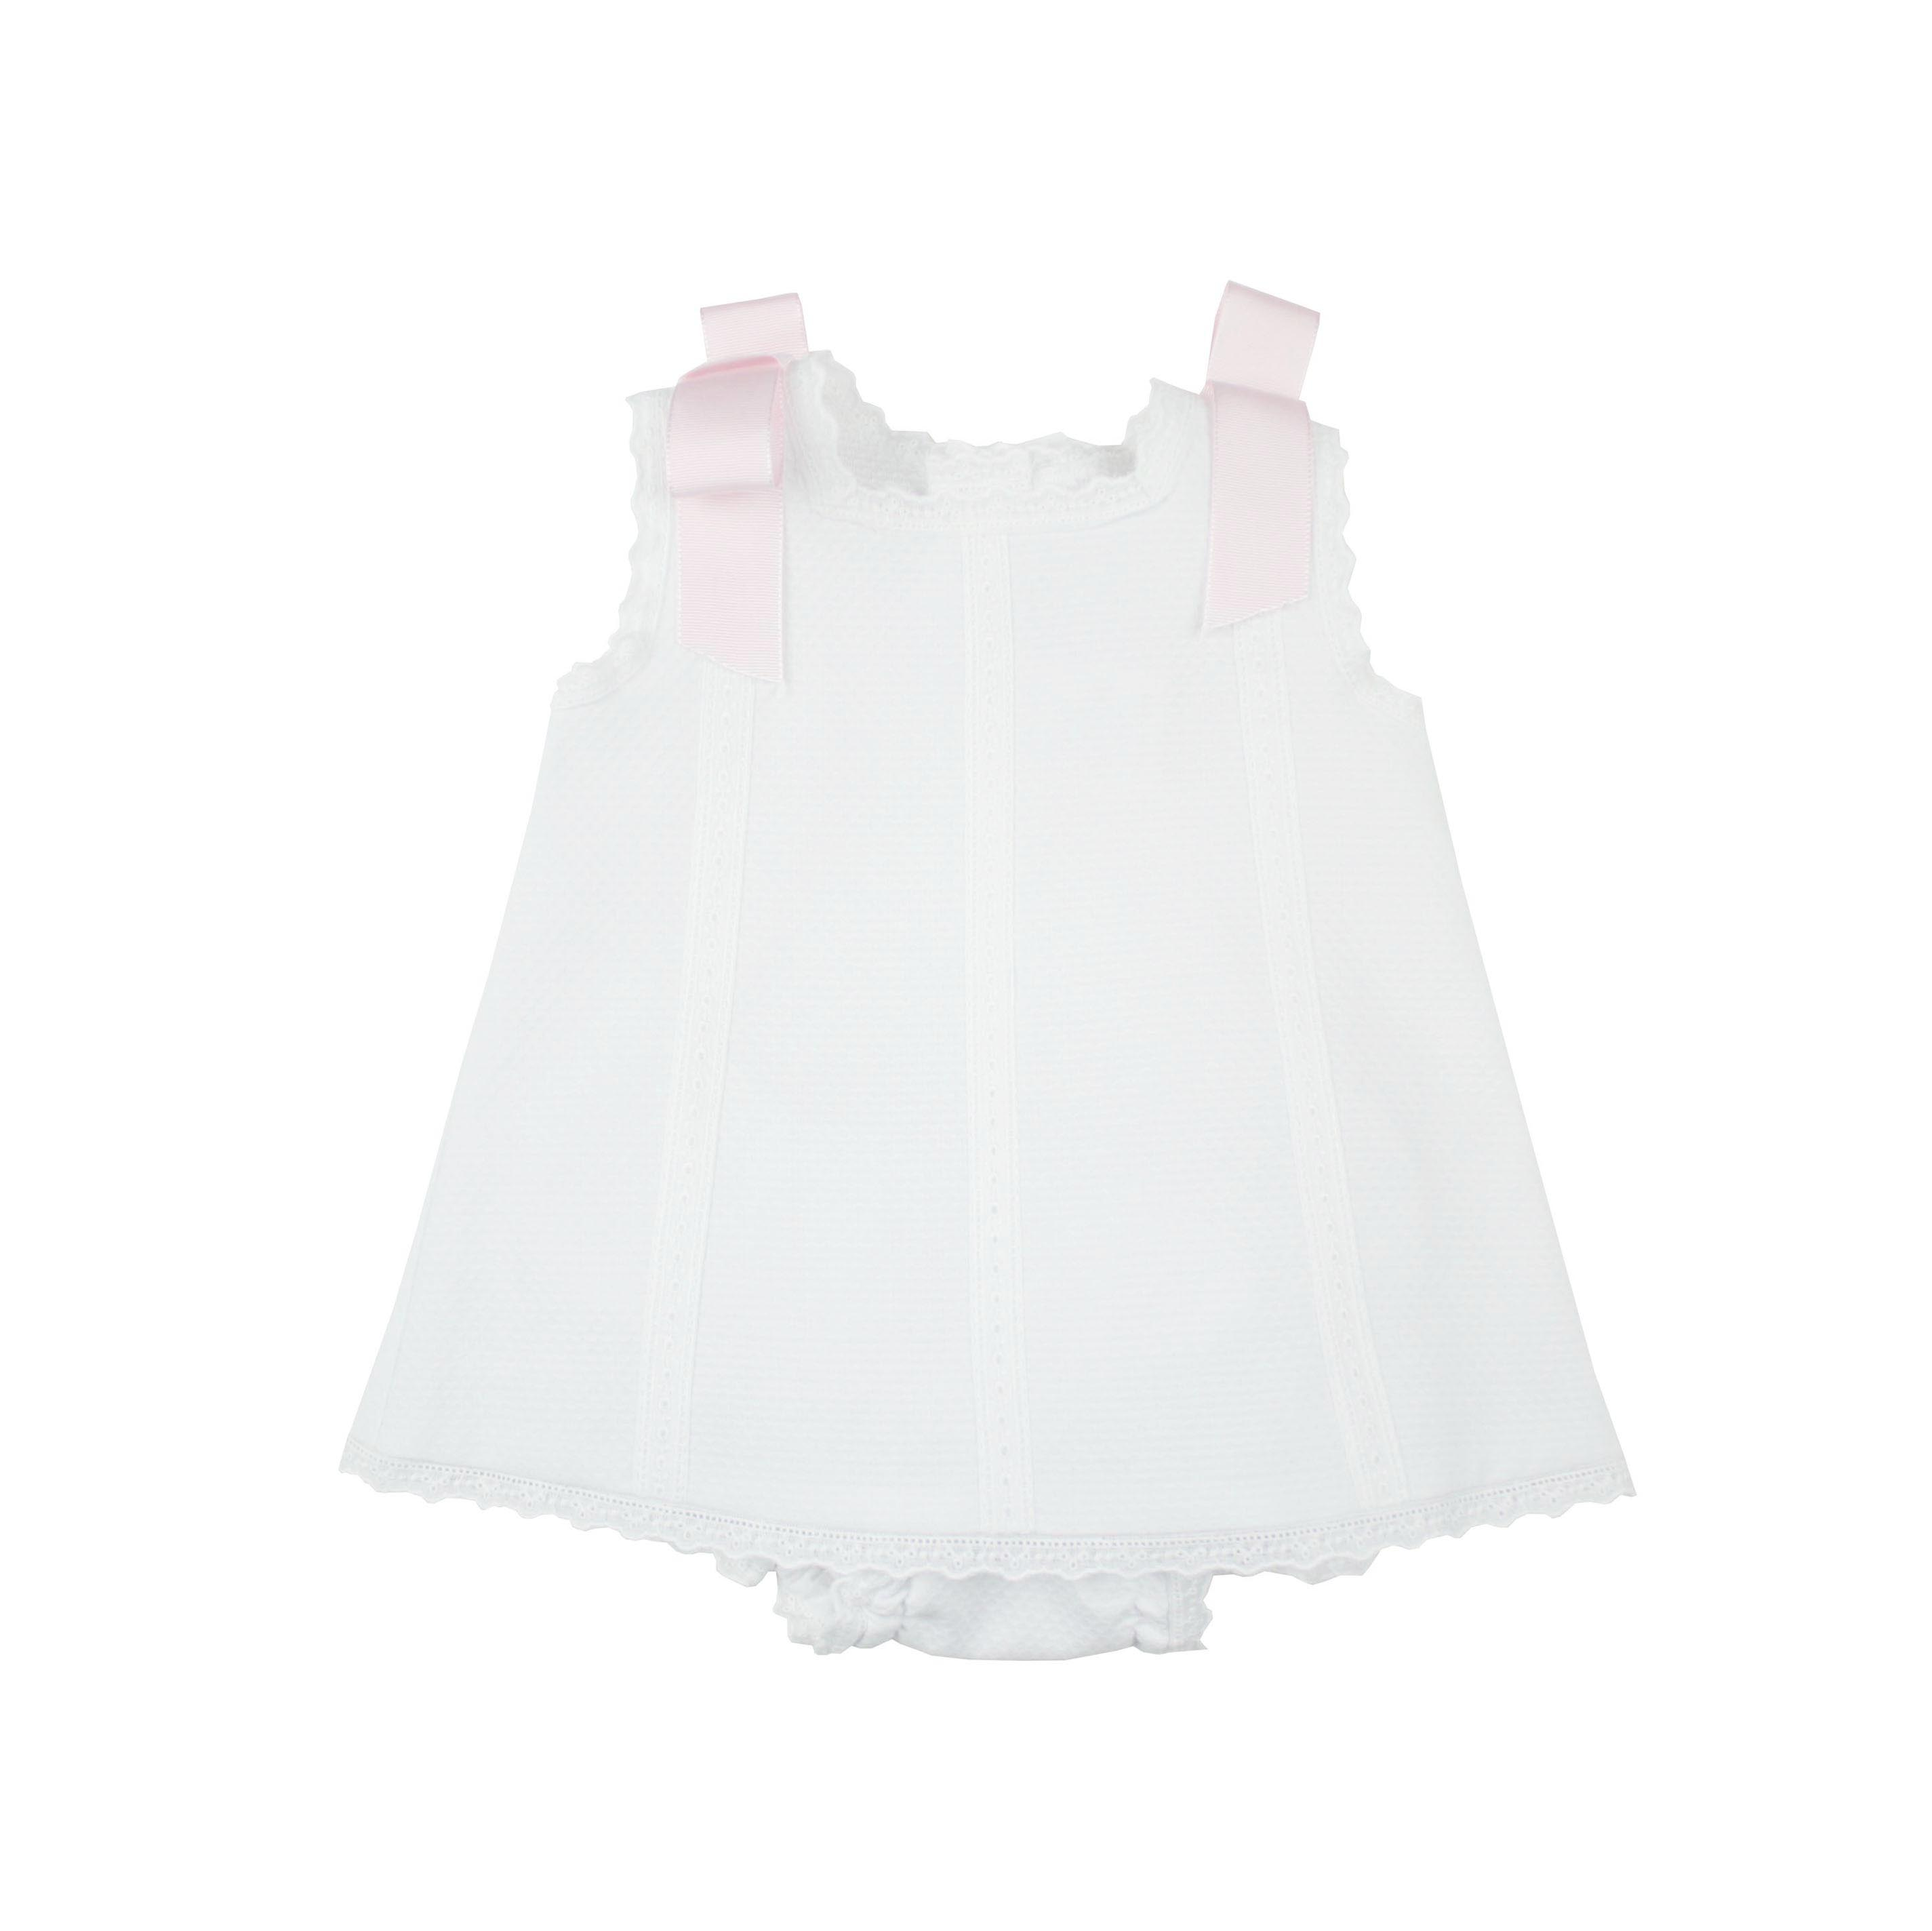 Baby s Dress in white piqué fabric and pink bows